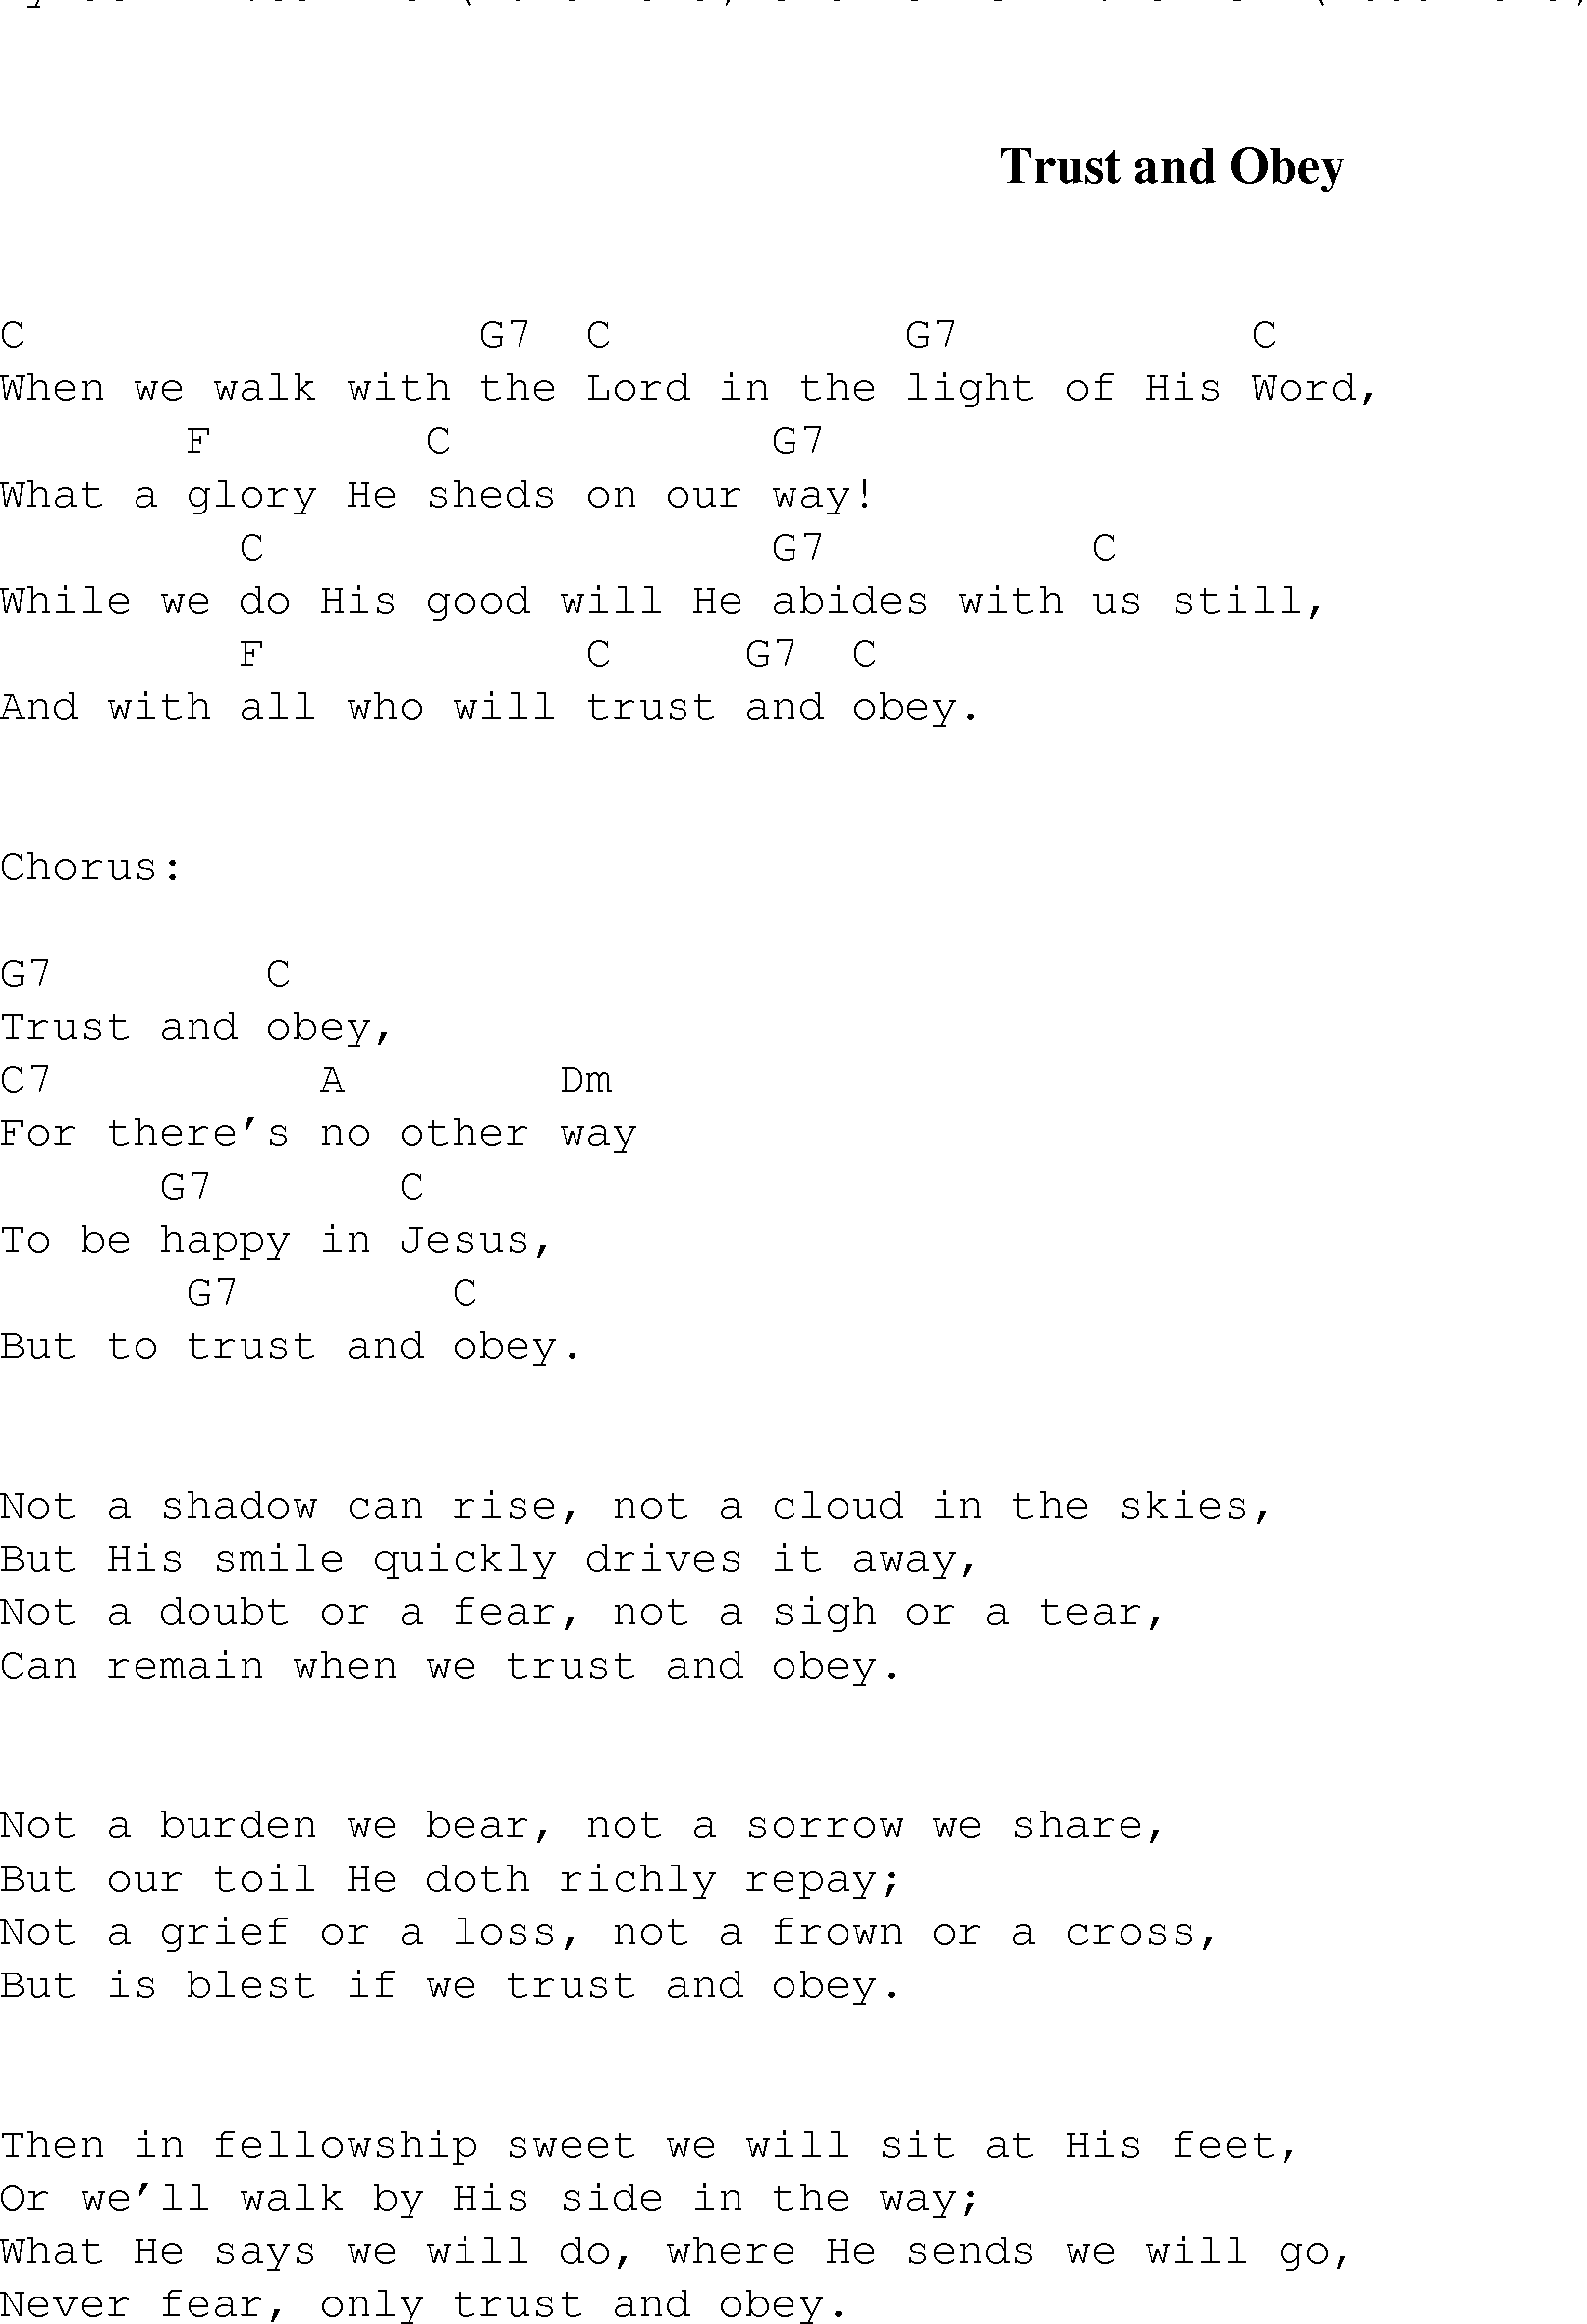 Trust And Obey Christian Gospel Song Lyrics And Chords